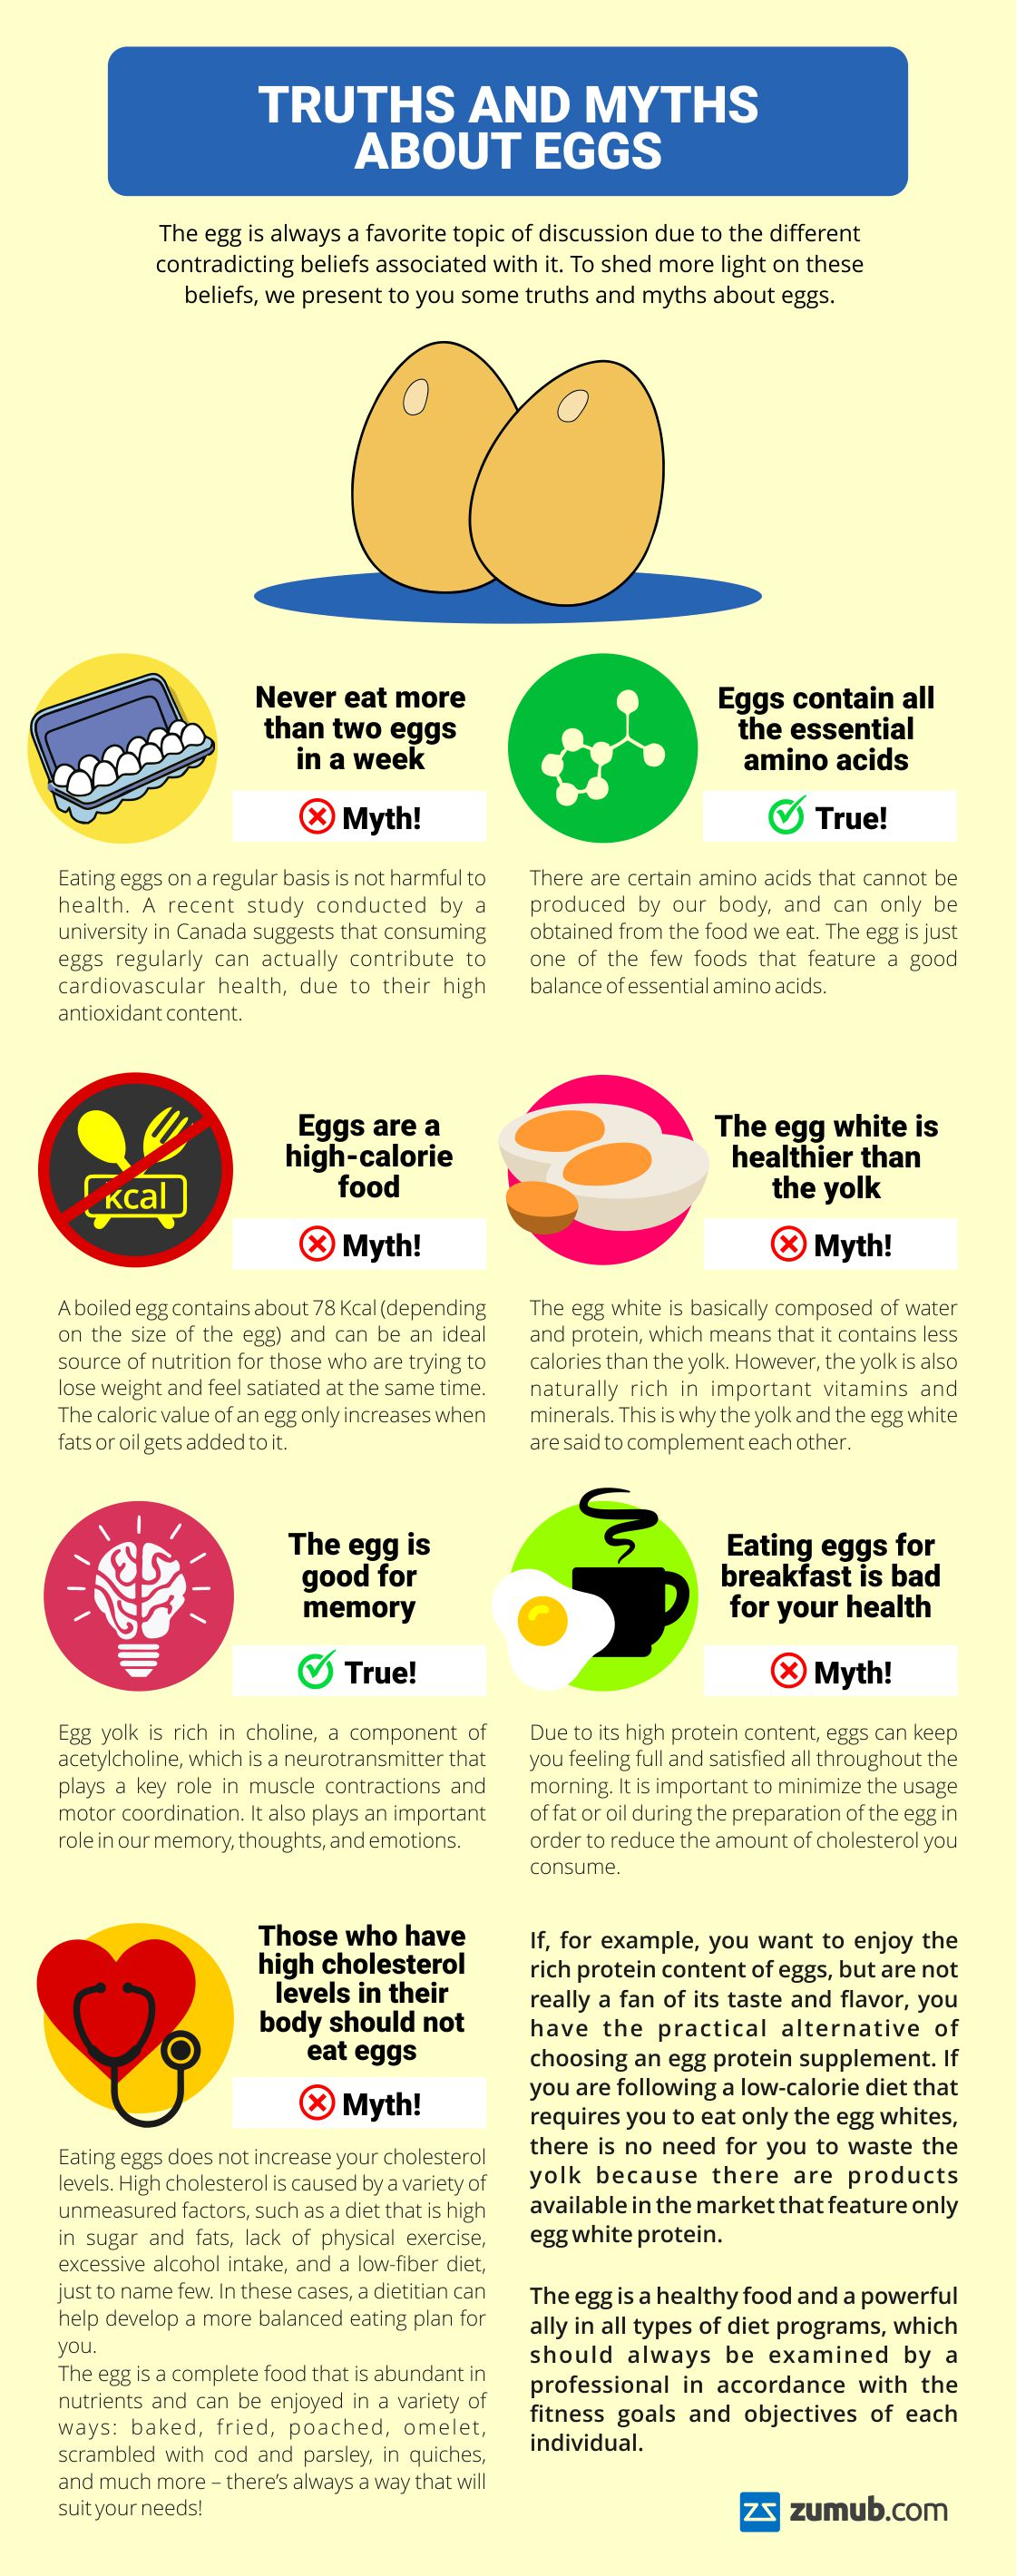 truths-and-myths-about-eggs-infographic-plaza